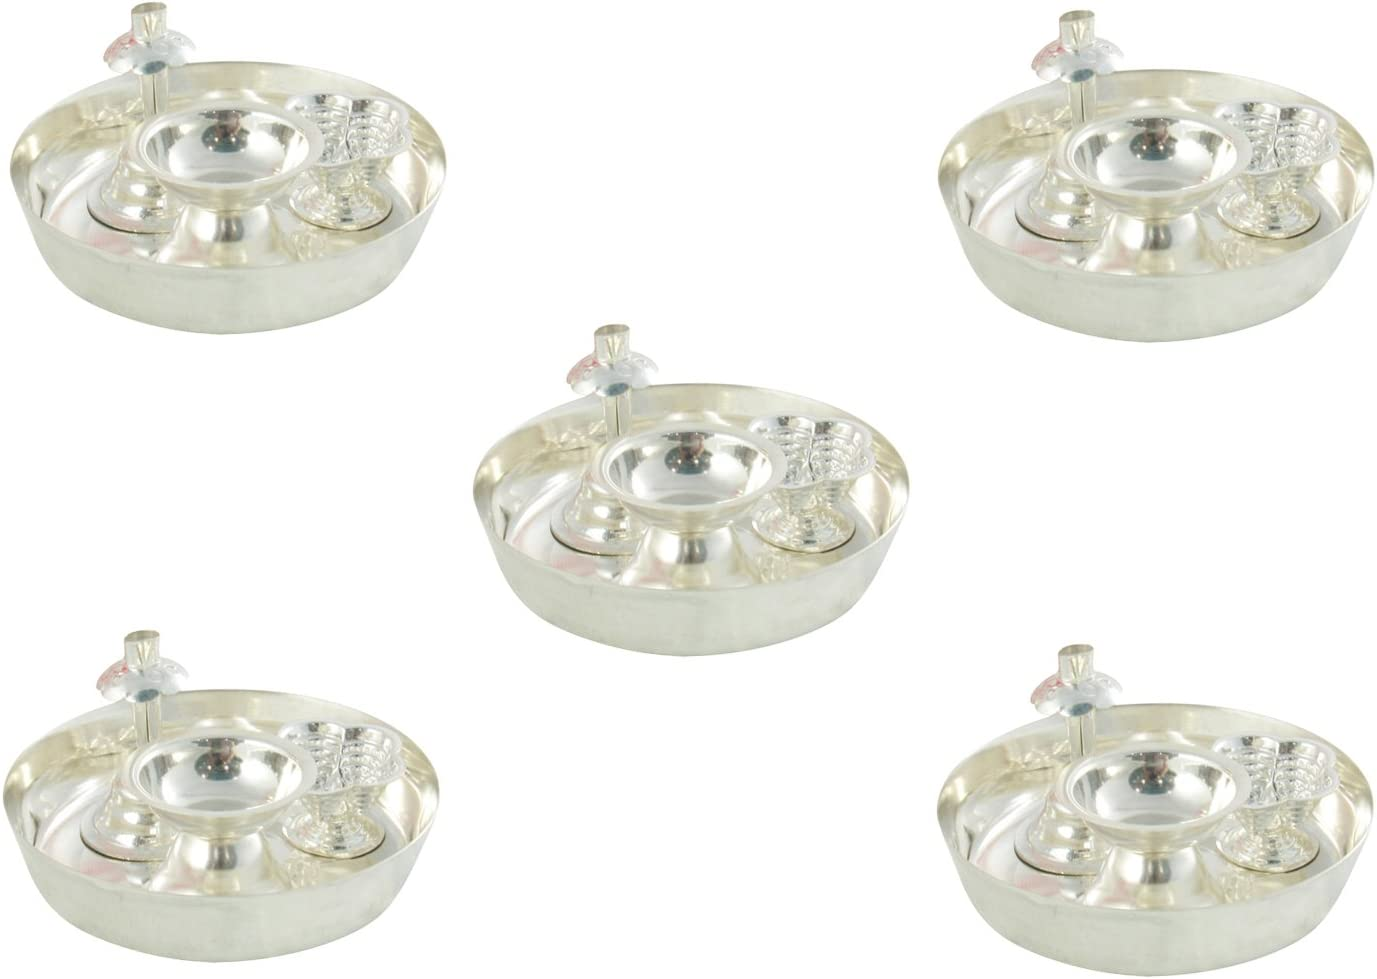 GoldGiftIdeas 4PS Plus (4 Inch) Silver Plated Pooja Thali Set (Pack of 5), Pooja Thali Decorative Plate, Return Gift for Wedding and Housewarming